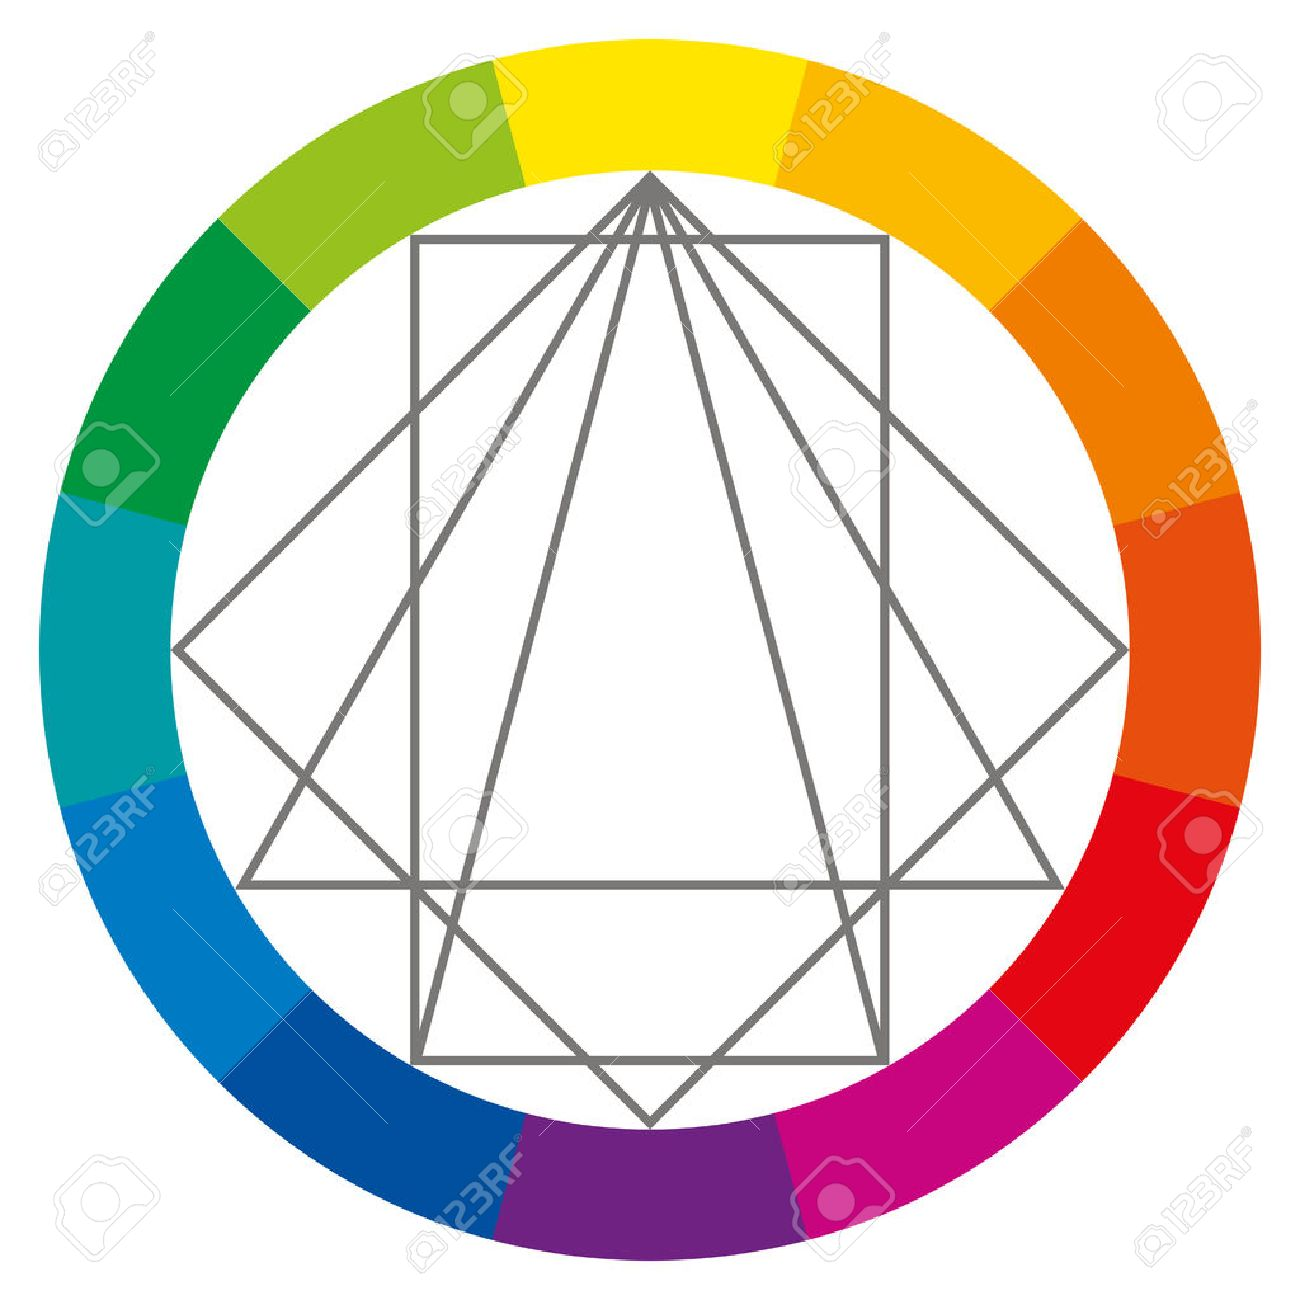 Color wheel complementary colors - Color Wheel Showing Complementary Colors That Are Used In Art And Paintings Square Rectangle